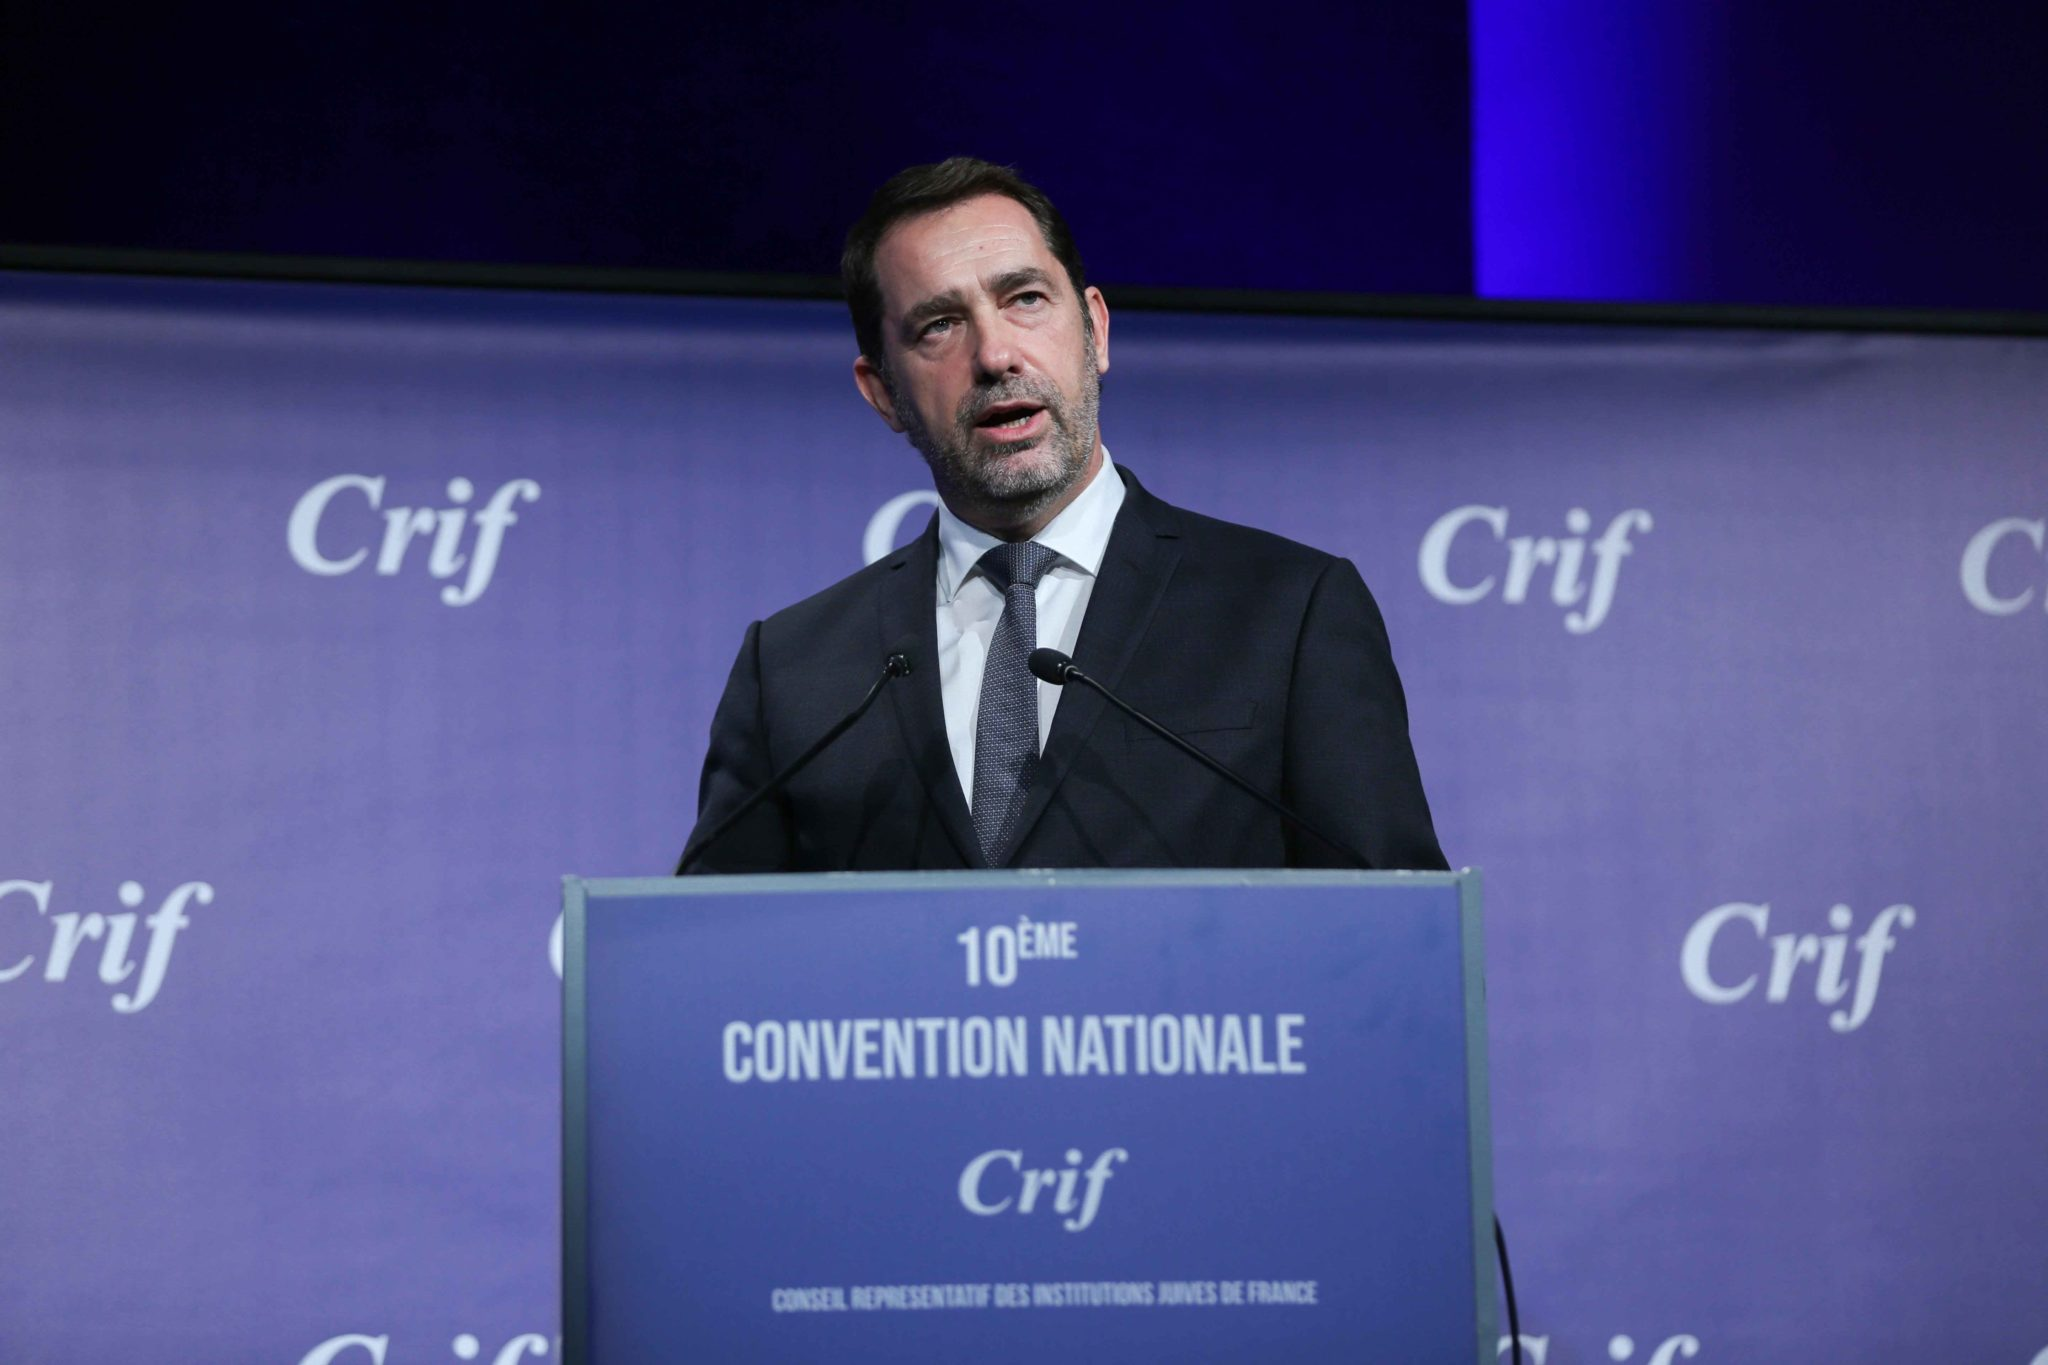 French Interior Minister Christophe Castaner takes part in the 10th national convention of the Representative Council of Jewish Institutions of France (CRIF - Conseil Representatif des Institutions juives de France) on November 17, 2019, at Le Palais des C